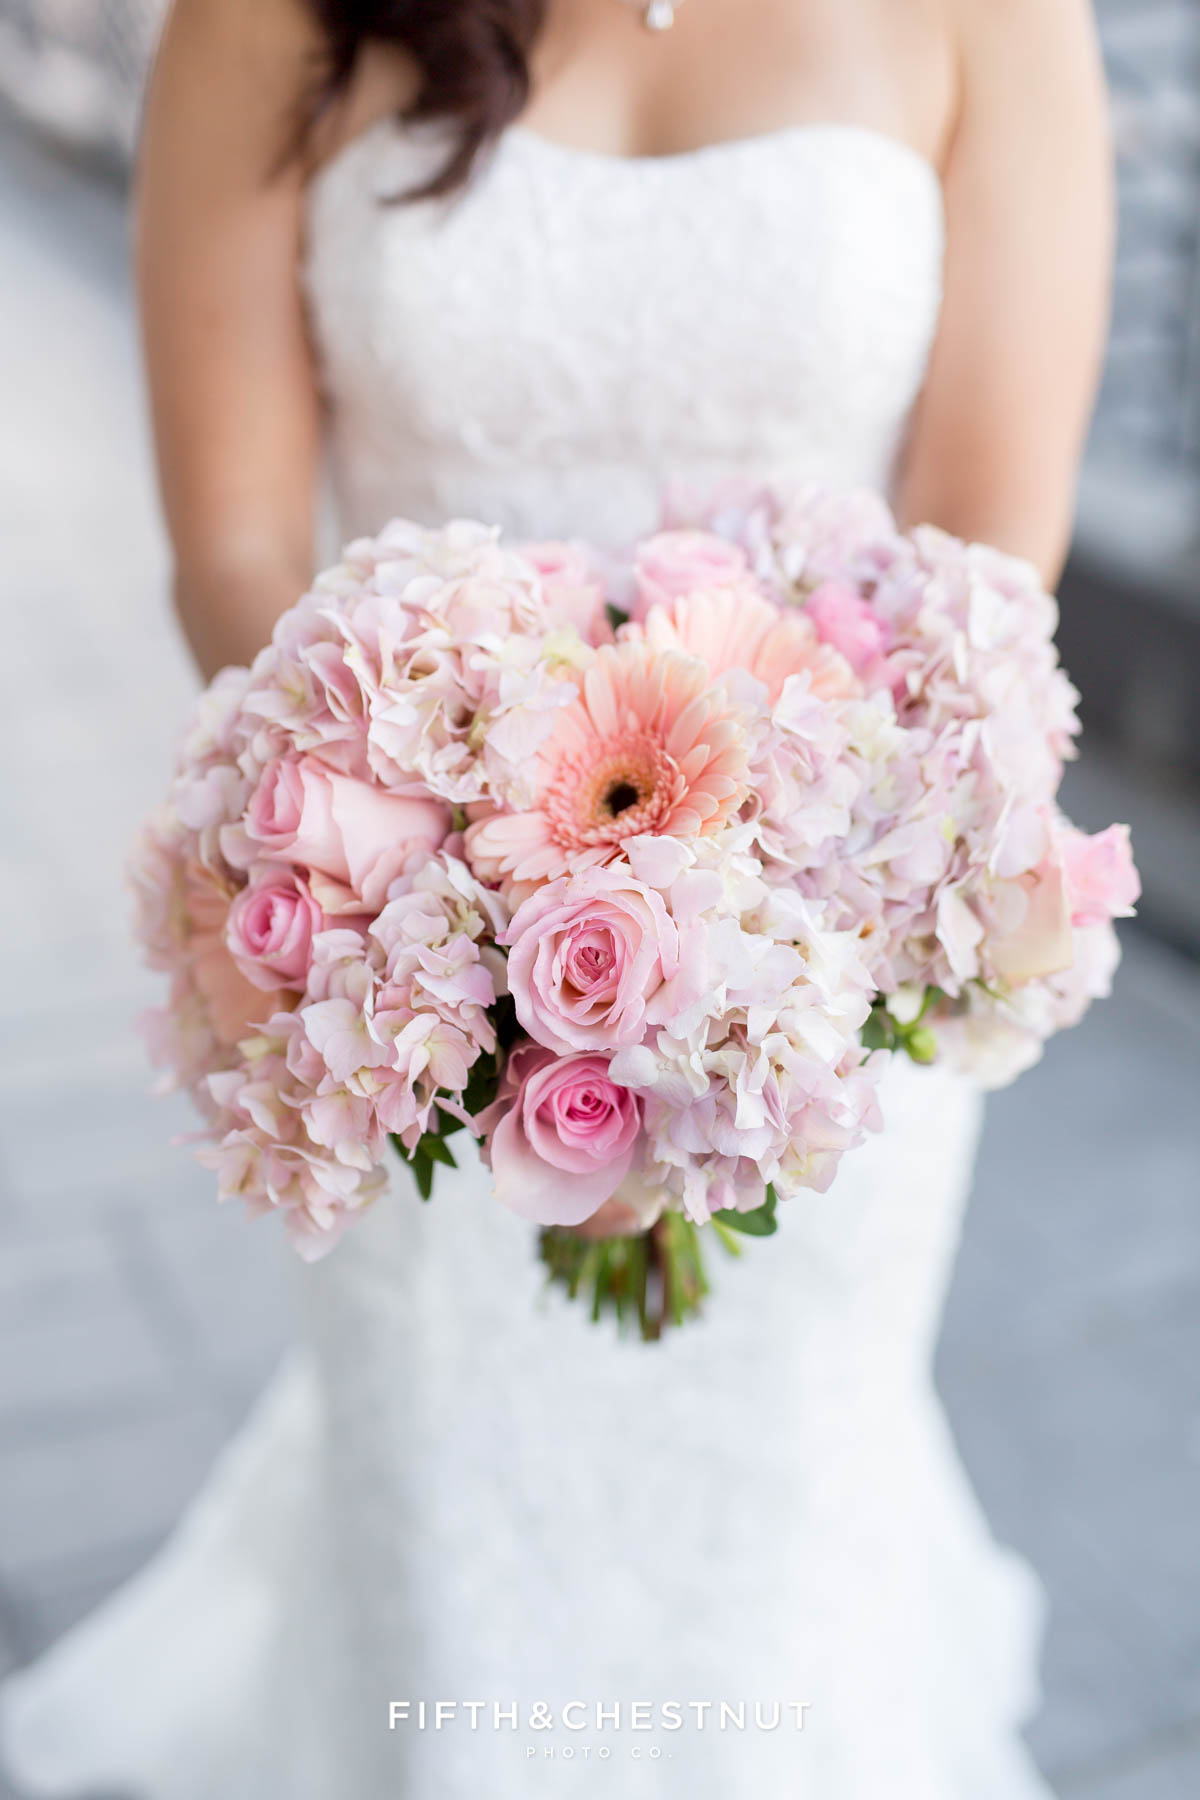 A Downtown Reno Elopement wedding bouquet made of hydrangeas, roses and pink gerber daisies